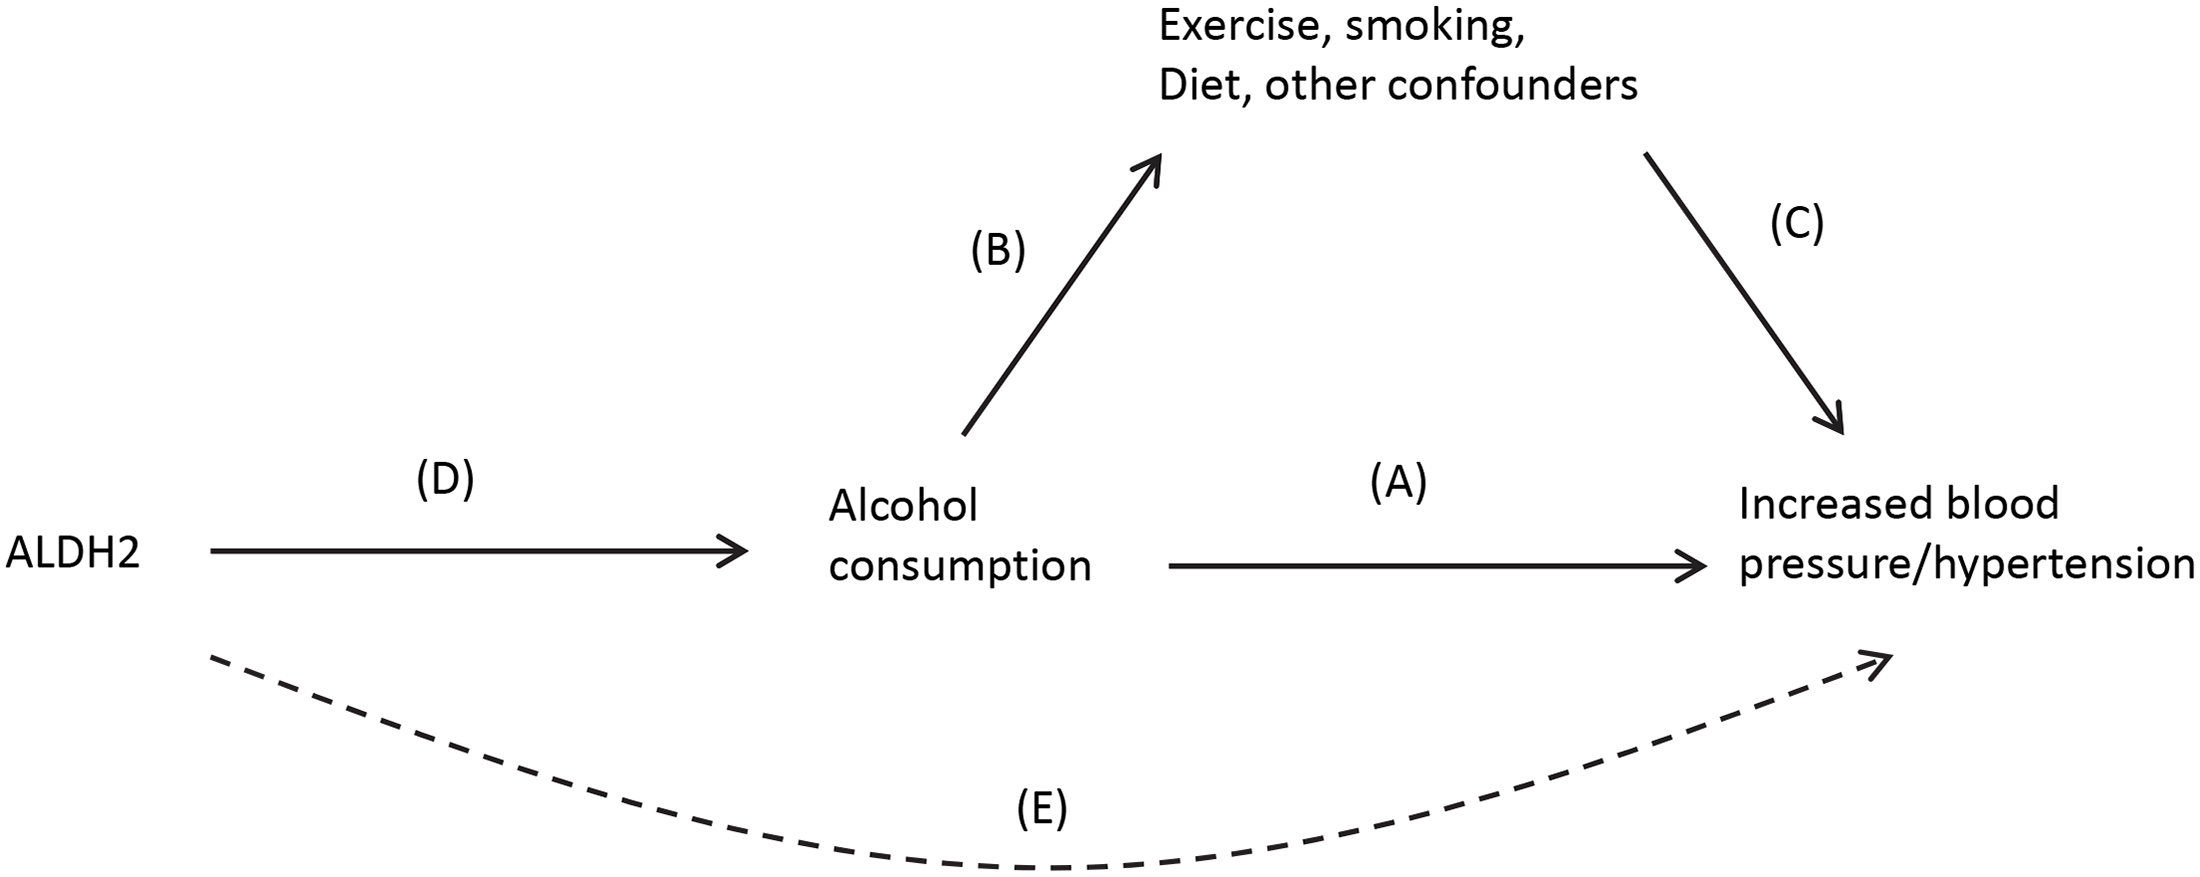 Causal pathway indicating how ALDH2 is an unconfounded marker (or instrument) of alcohol consumption in the association between alcohol and blood pressure.